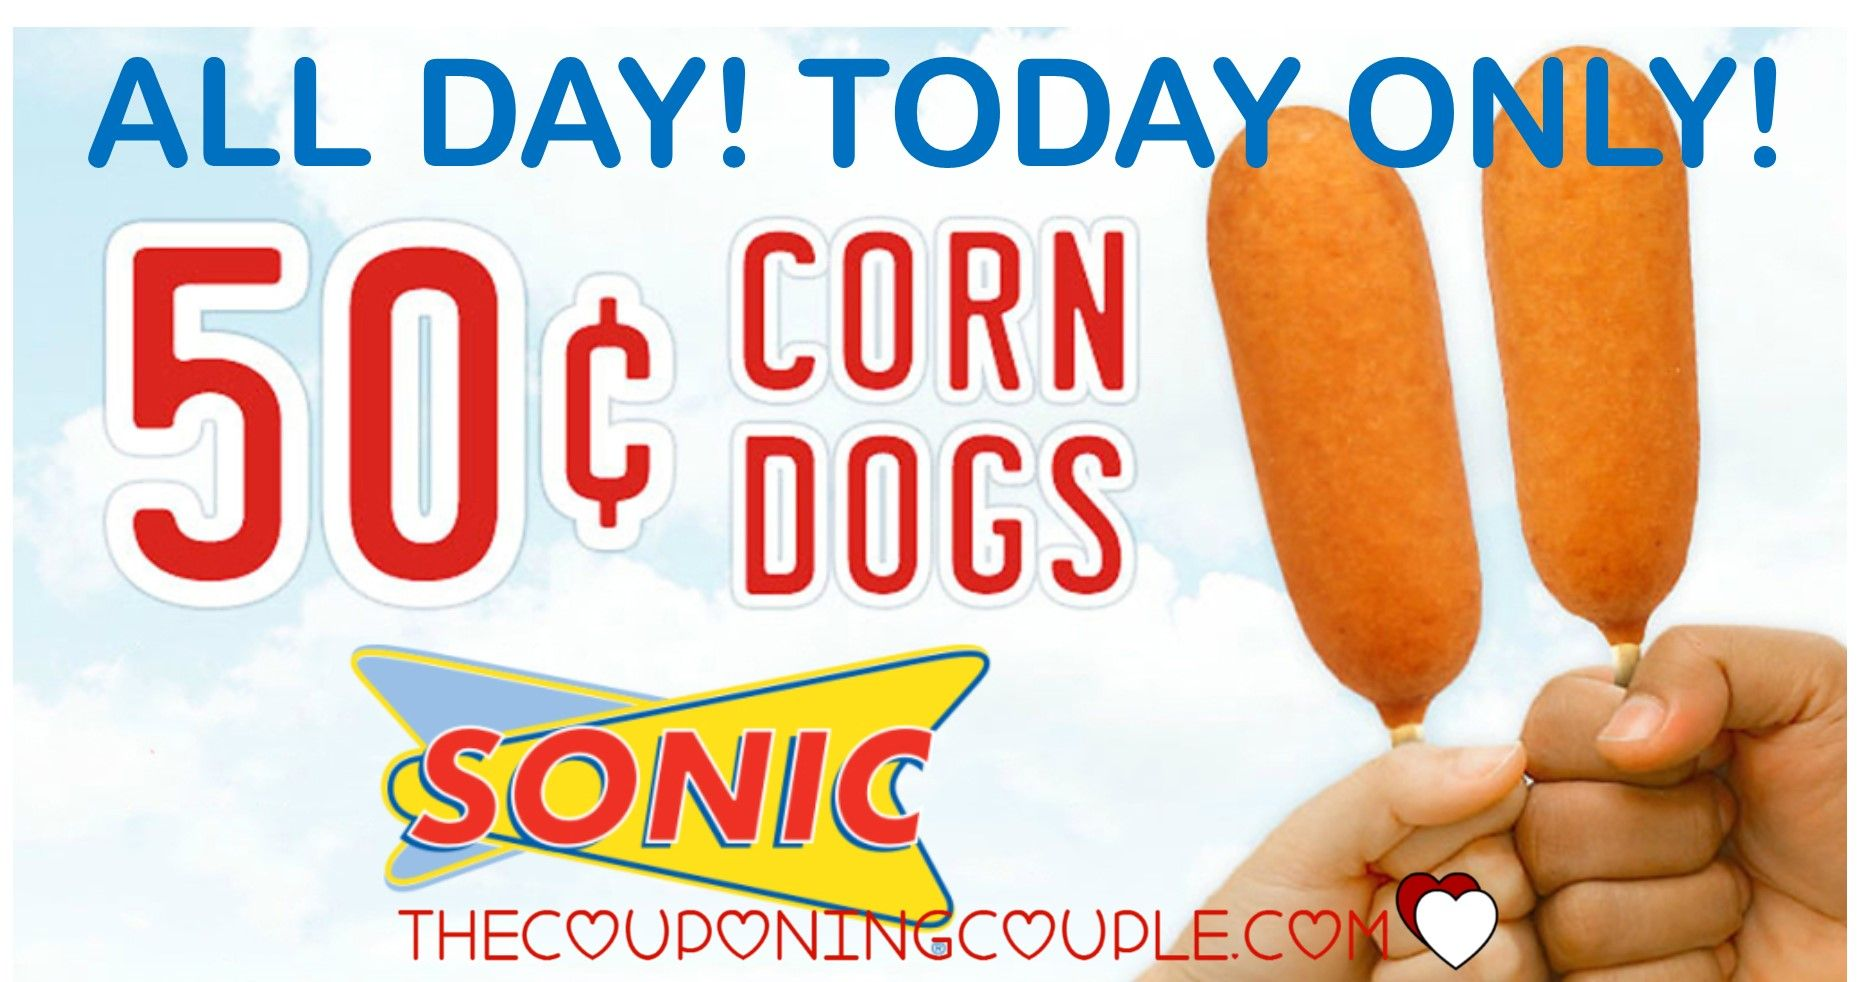 WOOHOO! 50¢ Corn Dogs at Sonic Today! Cheap lunch, dinner or snack! The kids will love you! February 8th only!  Click the link below to get all of the details ► http://www.thecouponingcouple.com/0-50-corn-dogs-at-sonic-today-only/ #Coupons #Couponing #CouponCommunity  Visit us at http://www.thecouponingcouple.com for more great posts!